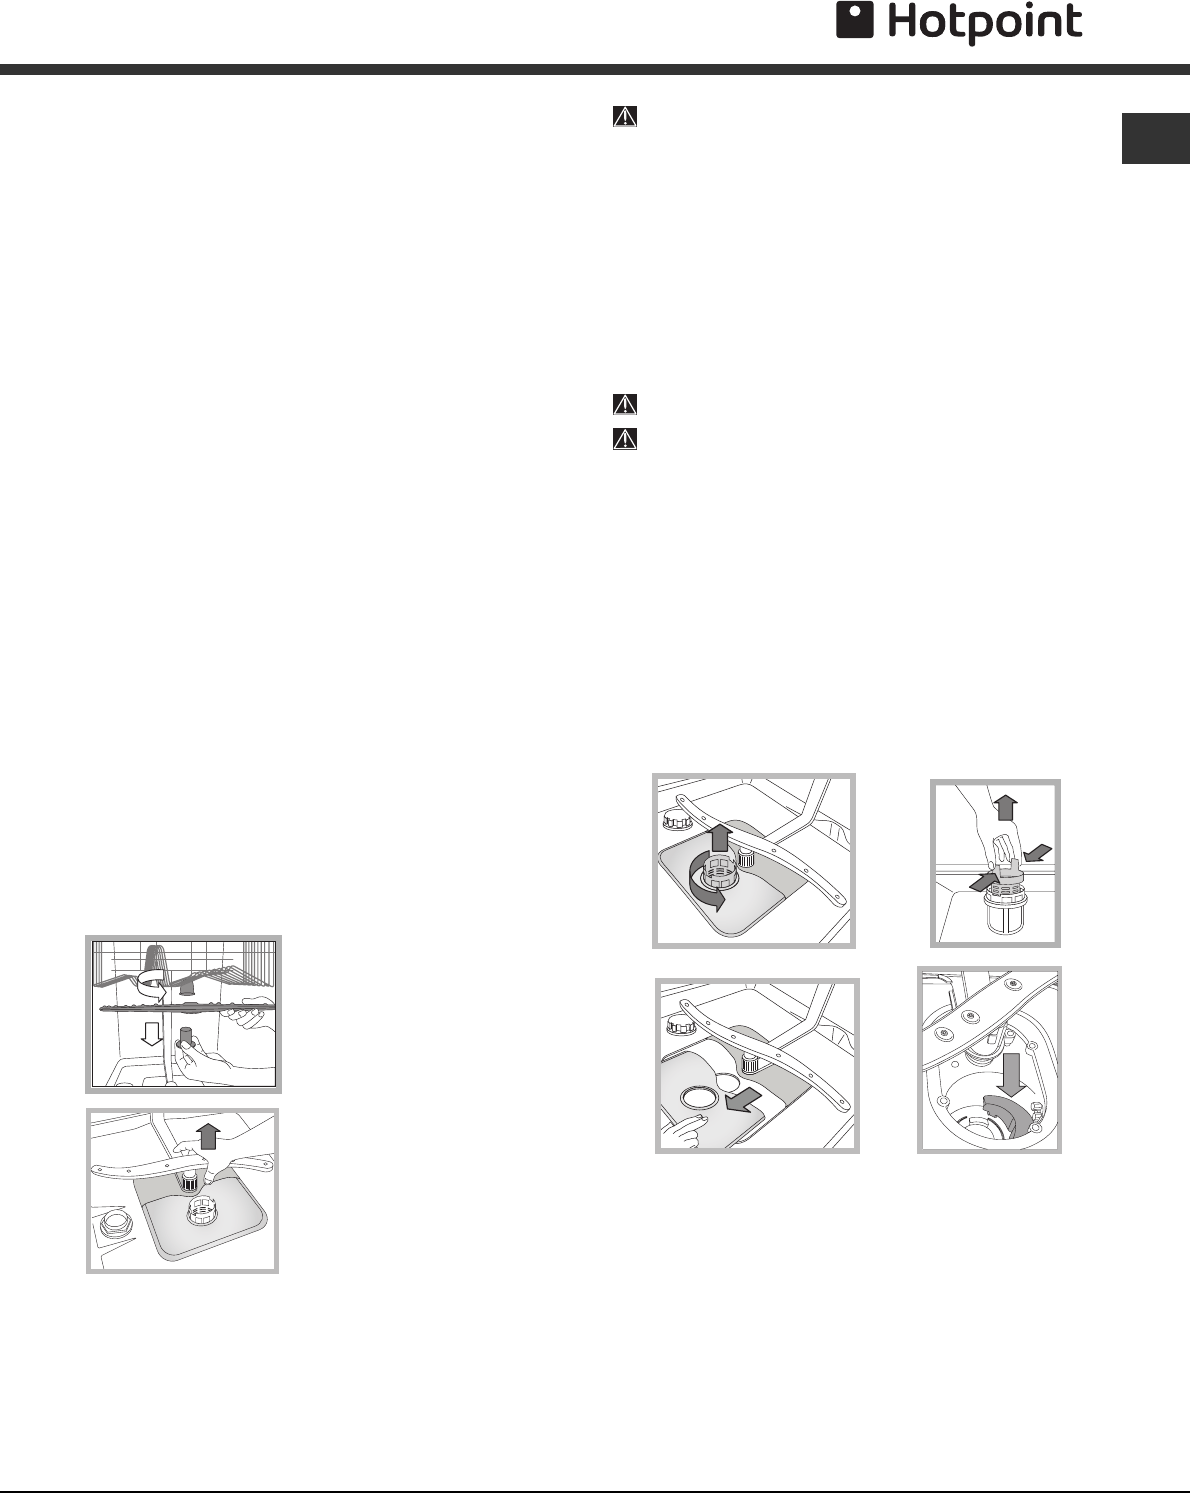 User manual Hotpoint LST216A (16 pages)